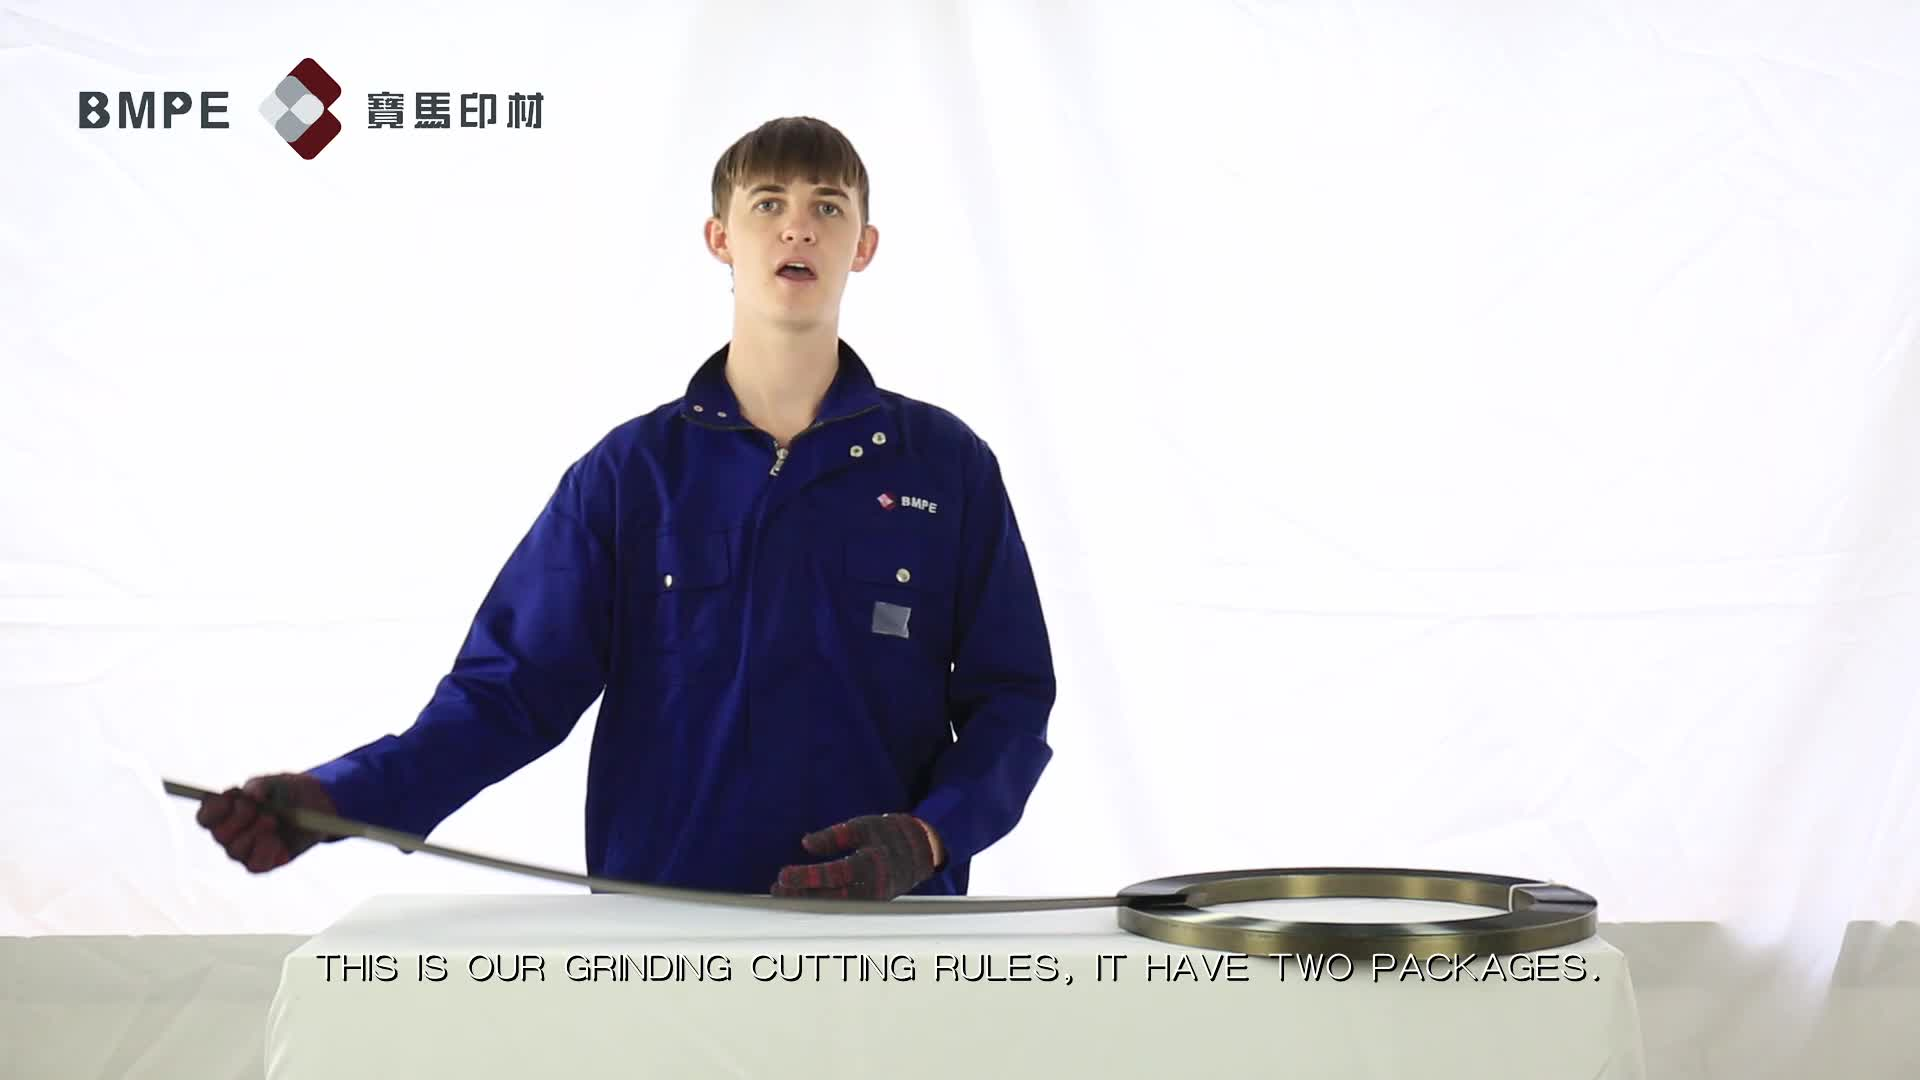 BOHMER grinding double-edge cutting rules